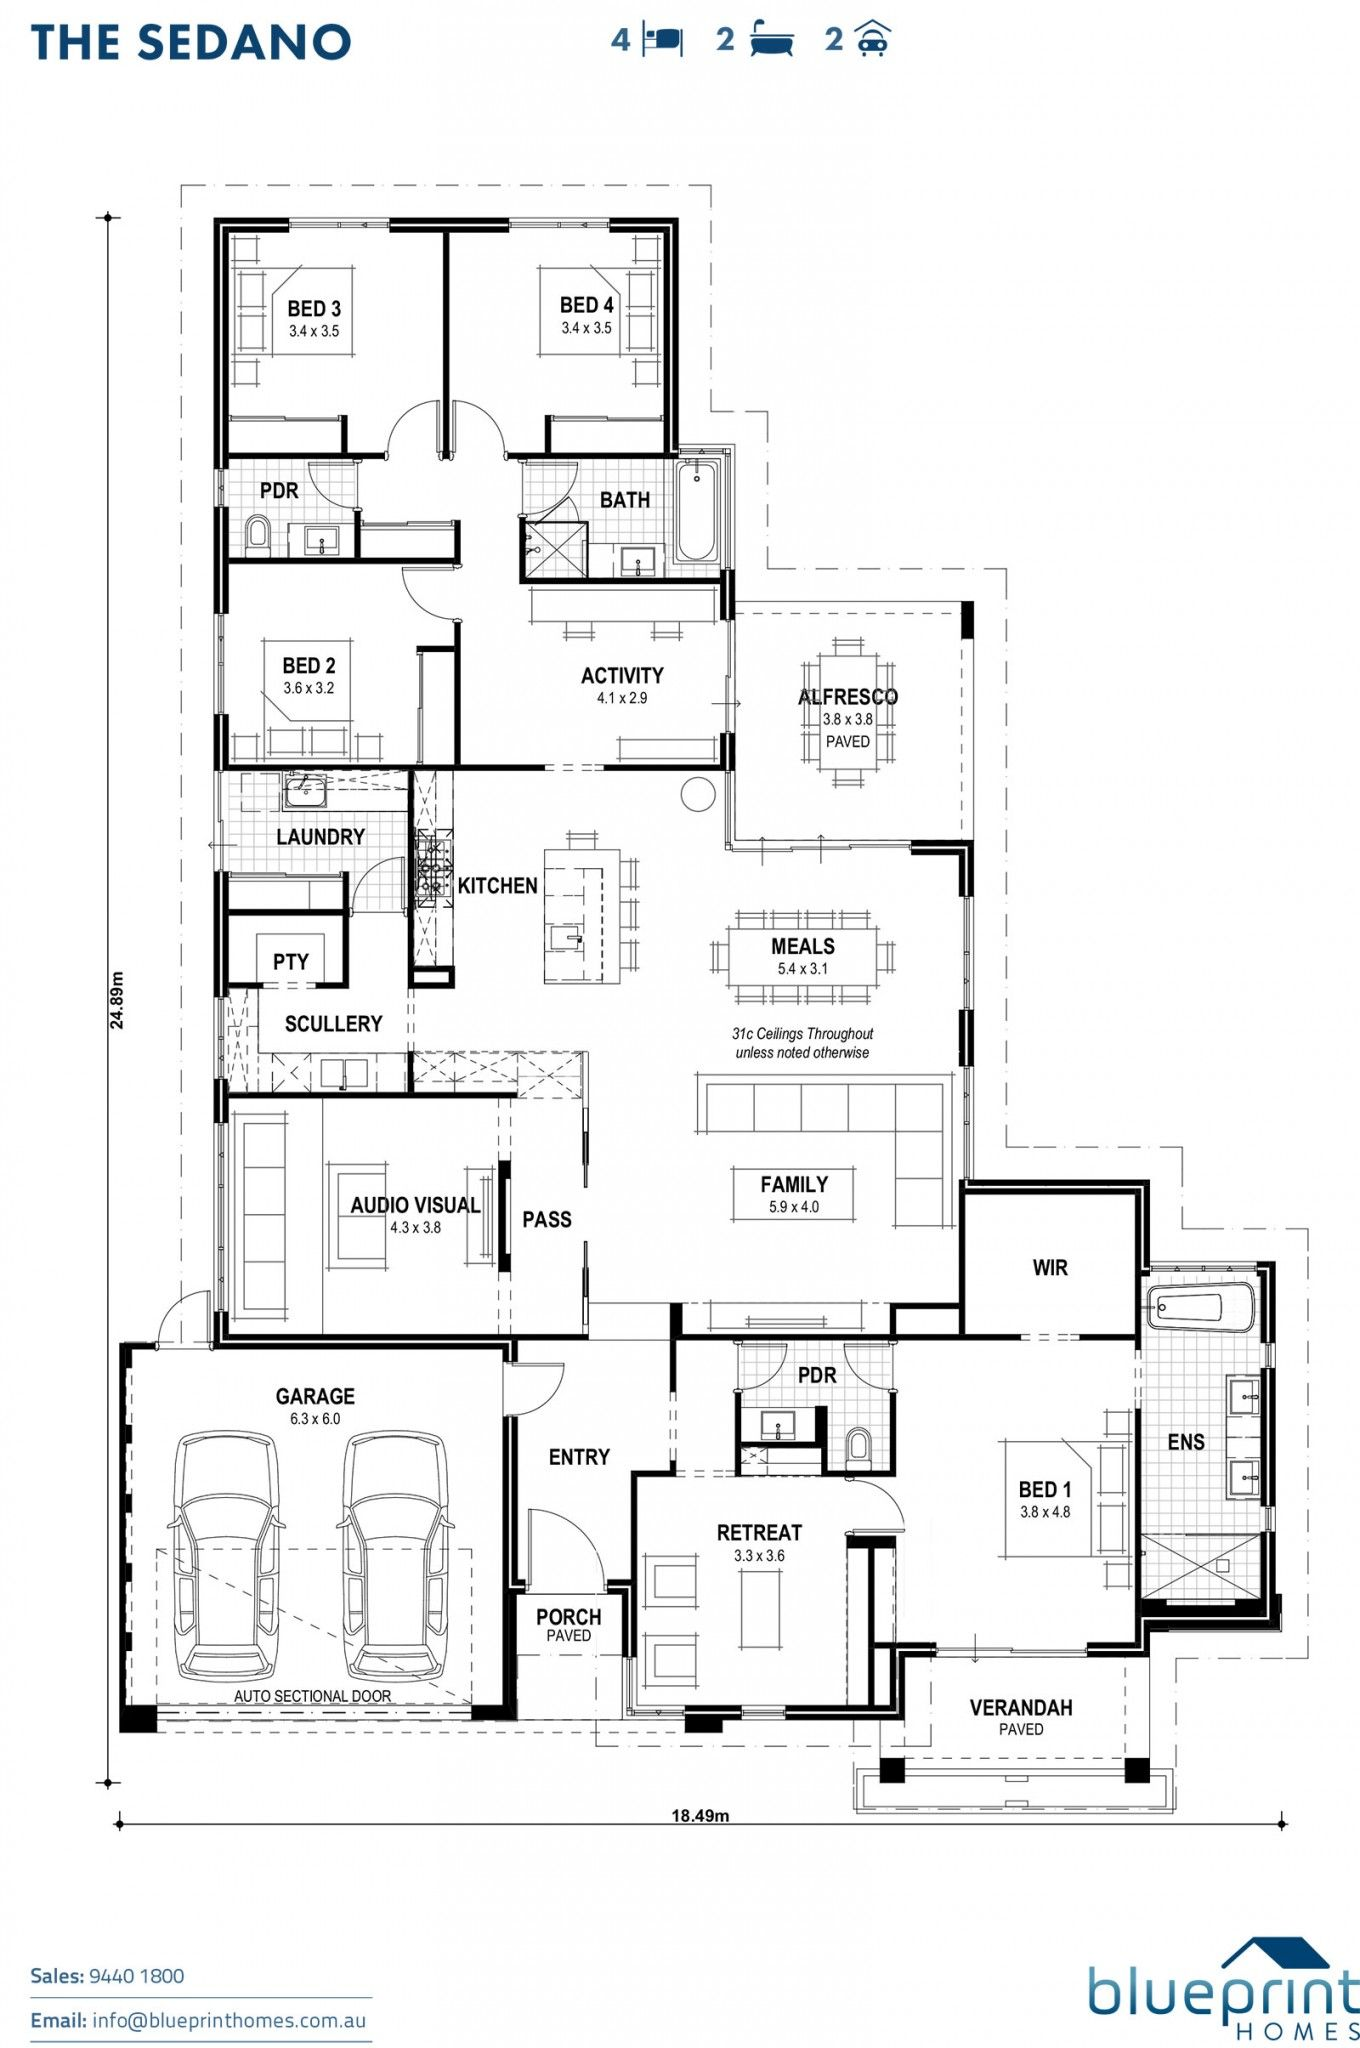 The Sedano Floorplan Jpg 1360 2048 Home Design Floor Plans Floor Plans New House Plans